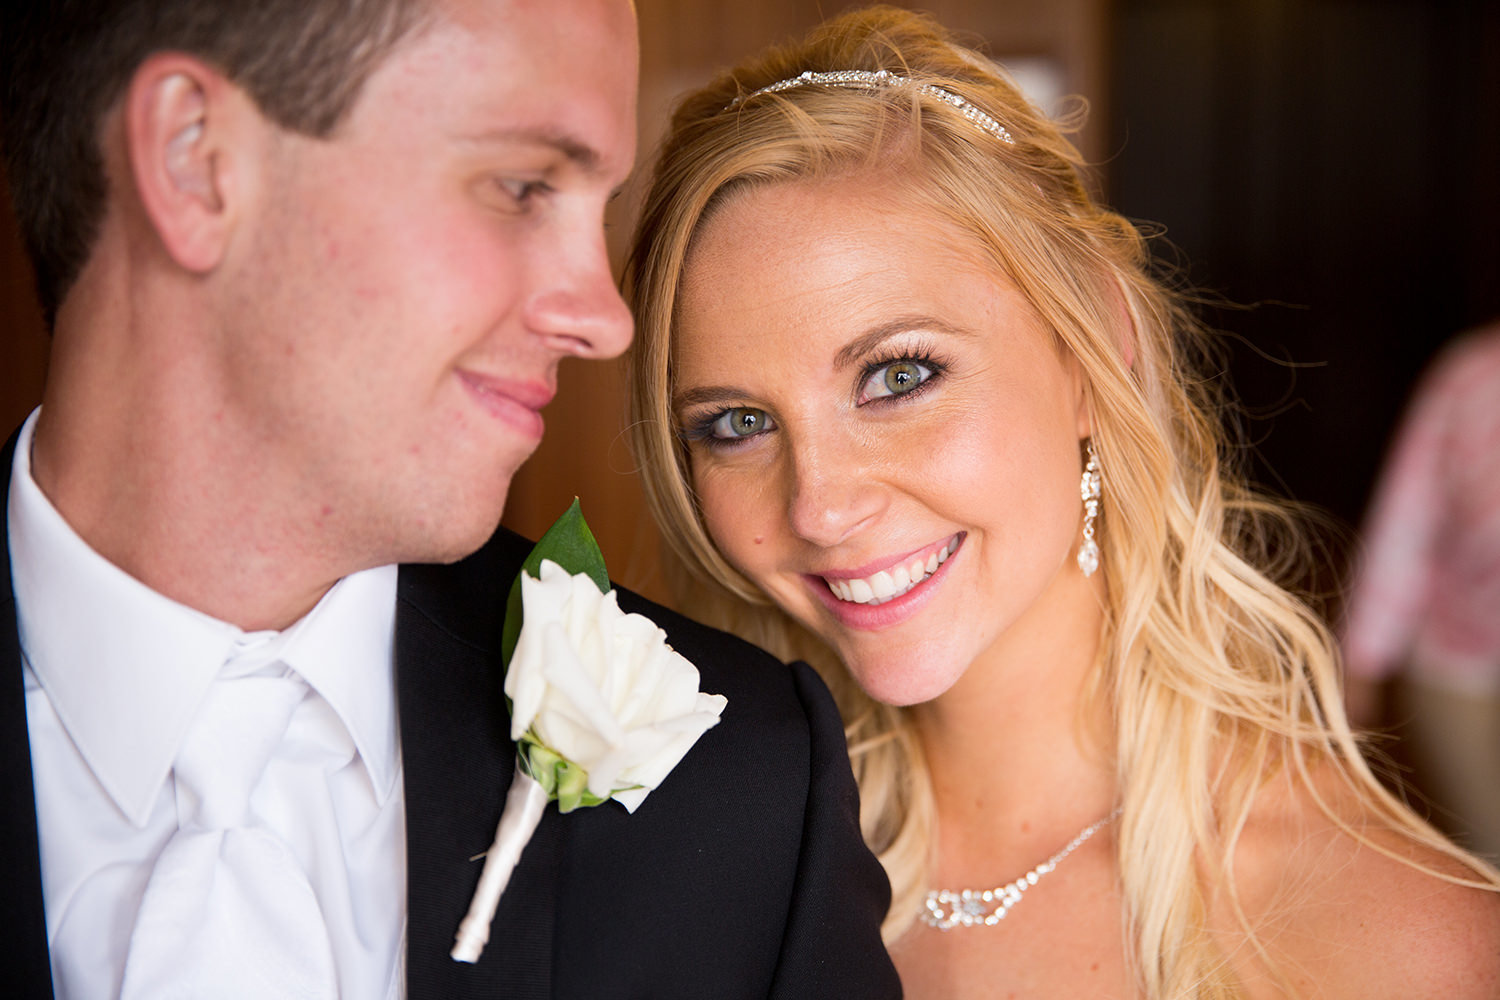 Wedding portrait of couple with beautiful smiles